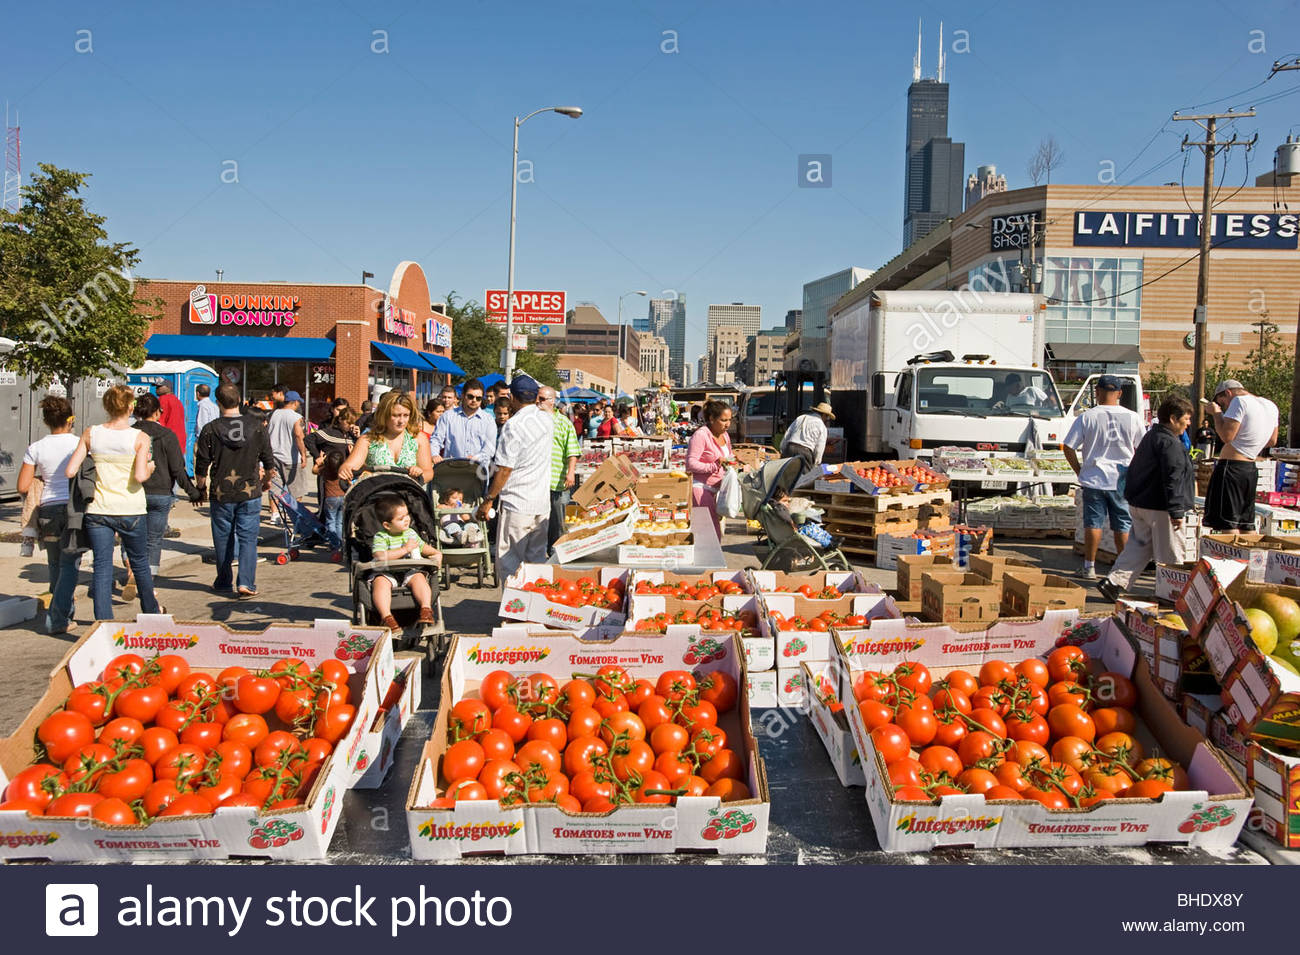 Street market in the South Loop area. Chicago, Illinois, usa - Stock Image